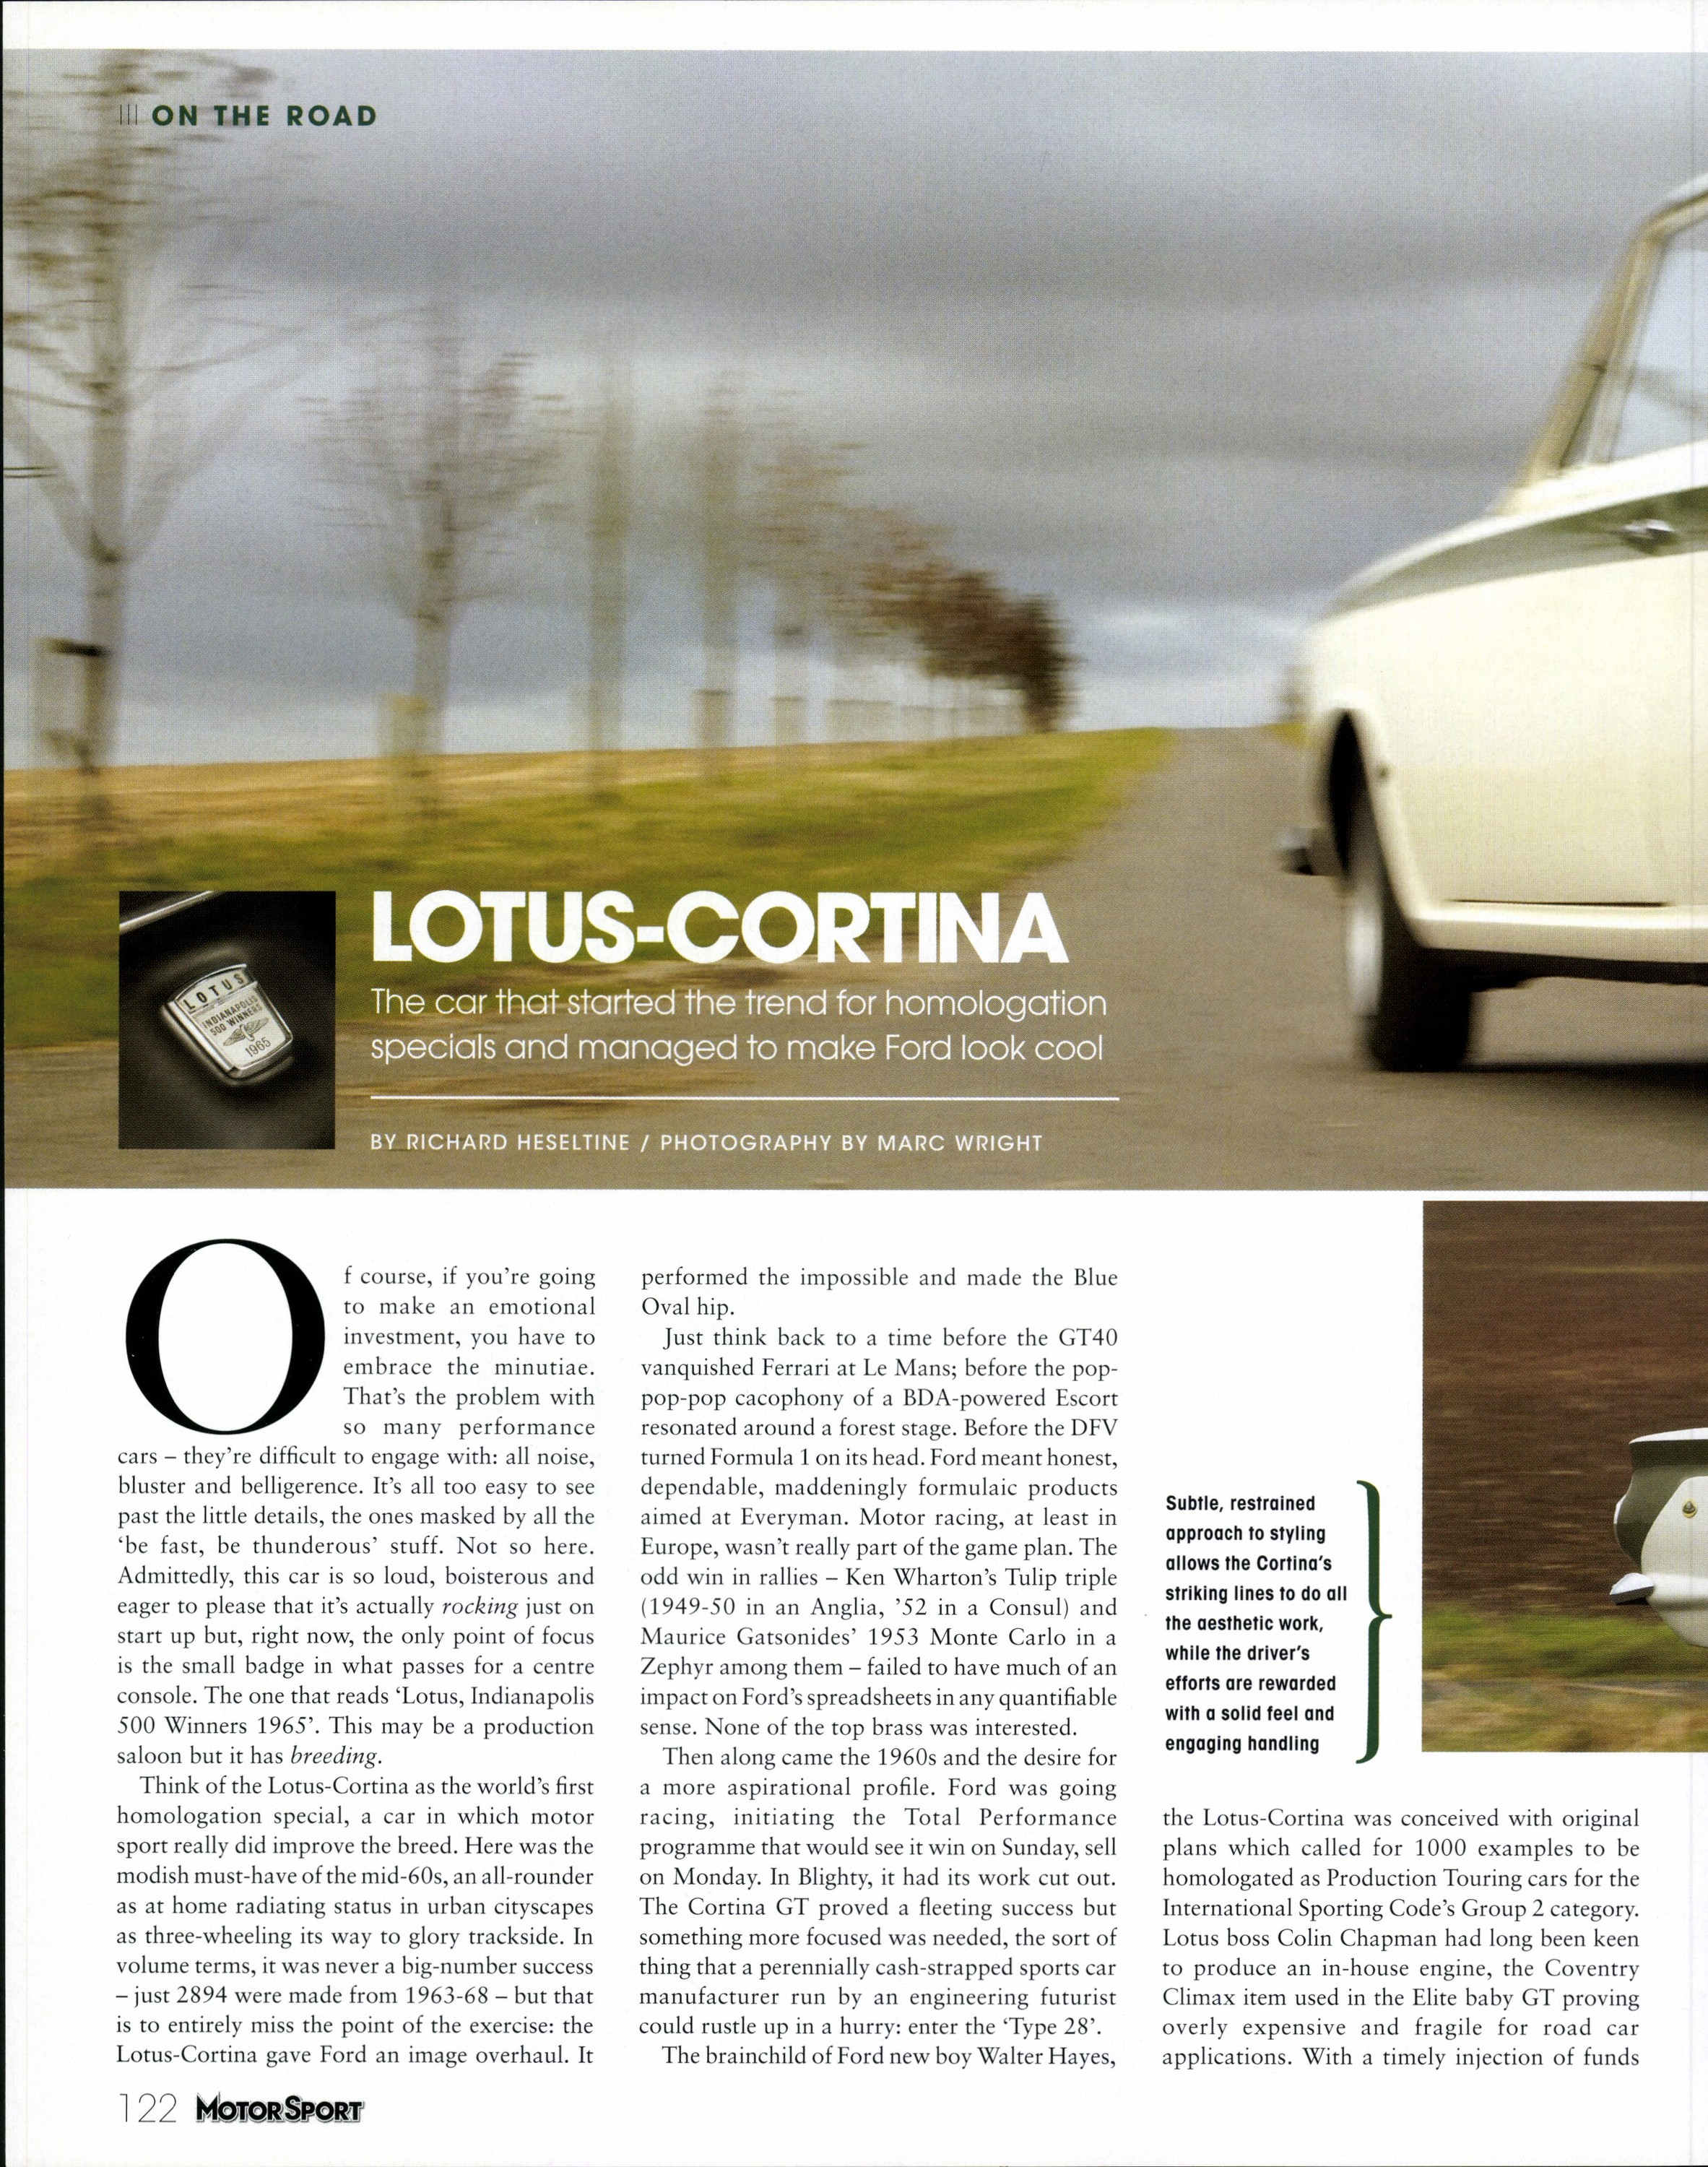 lotus cortina image